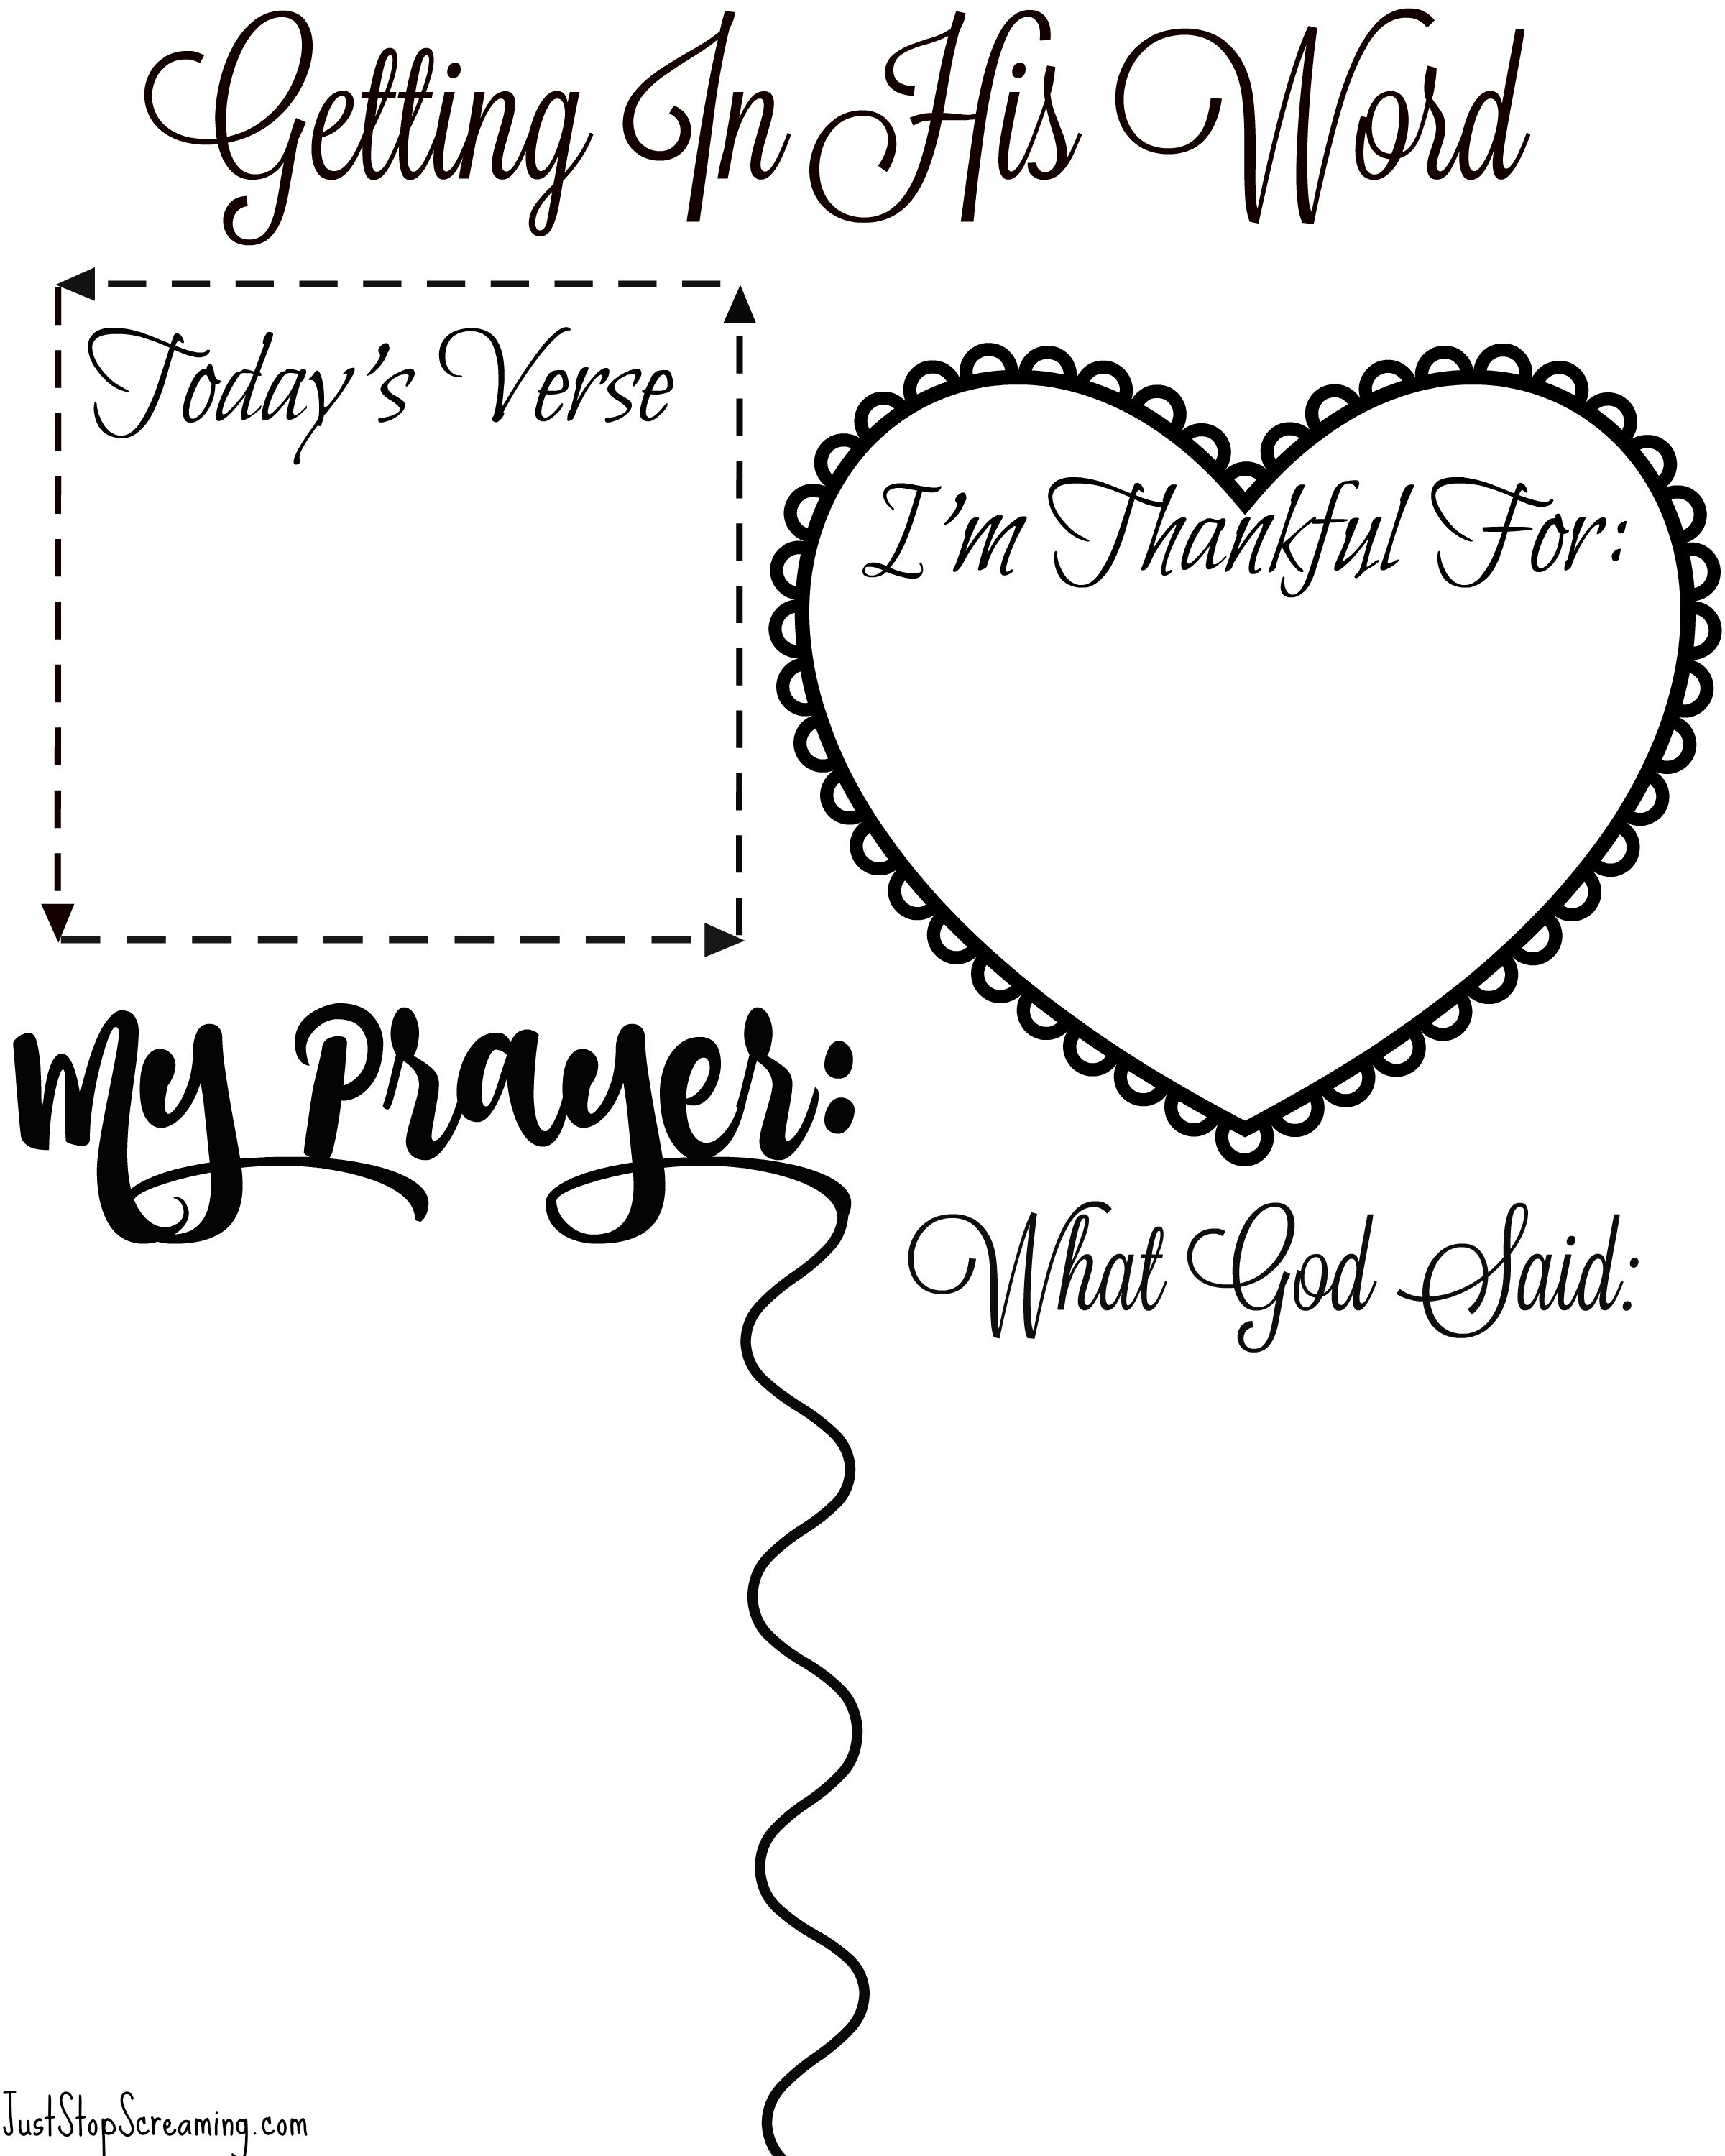 Bibles Study Coloring Sheets For Kids  Free Bible Study Printable For Adults and Kids